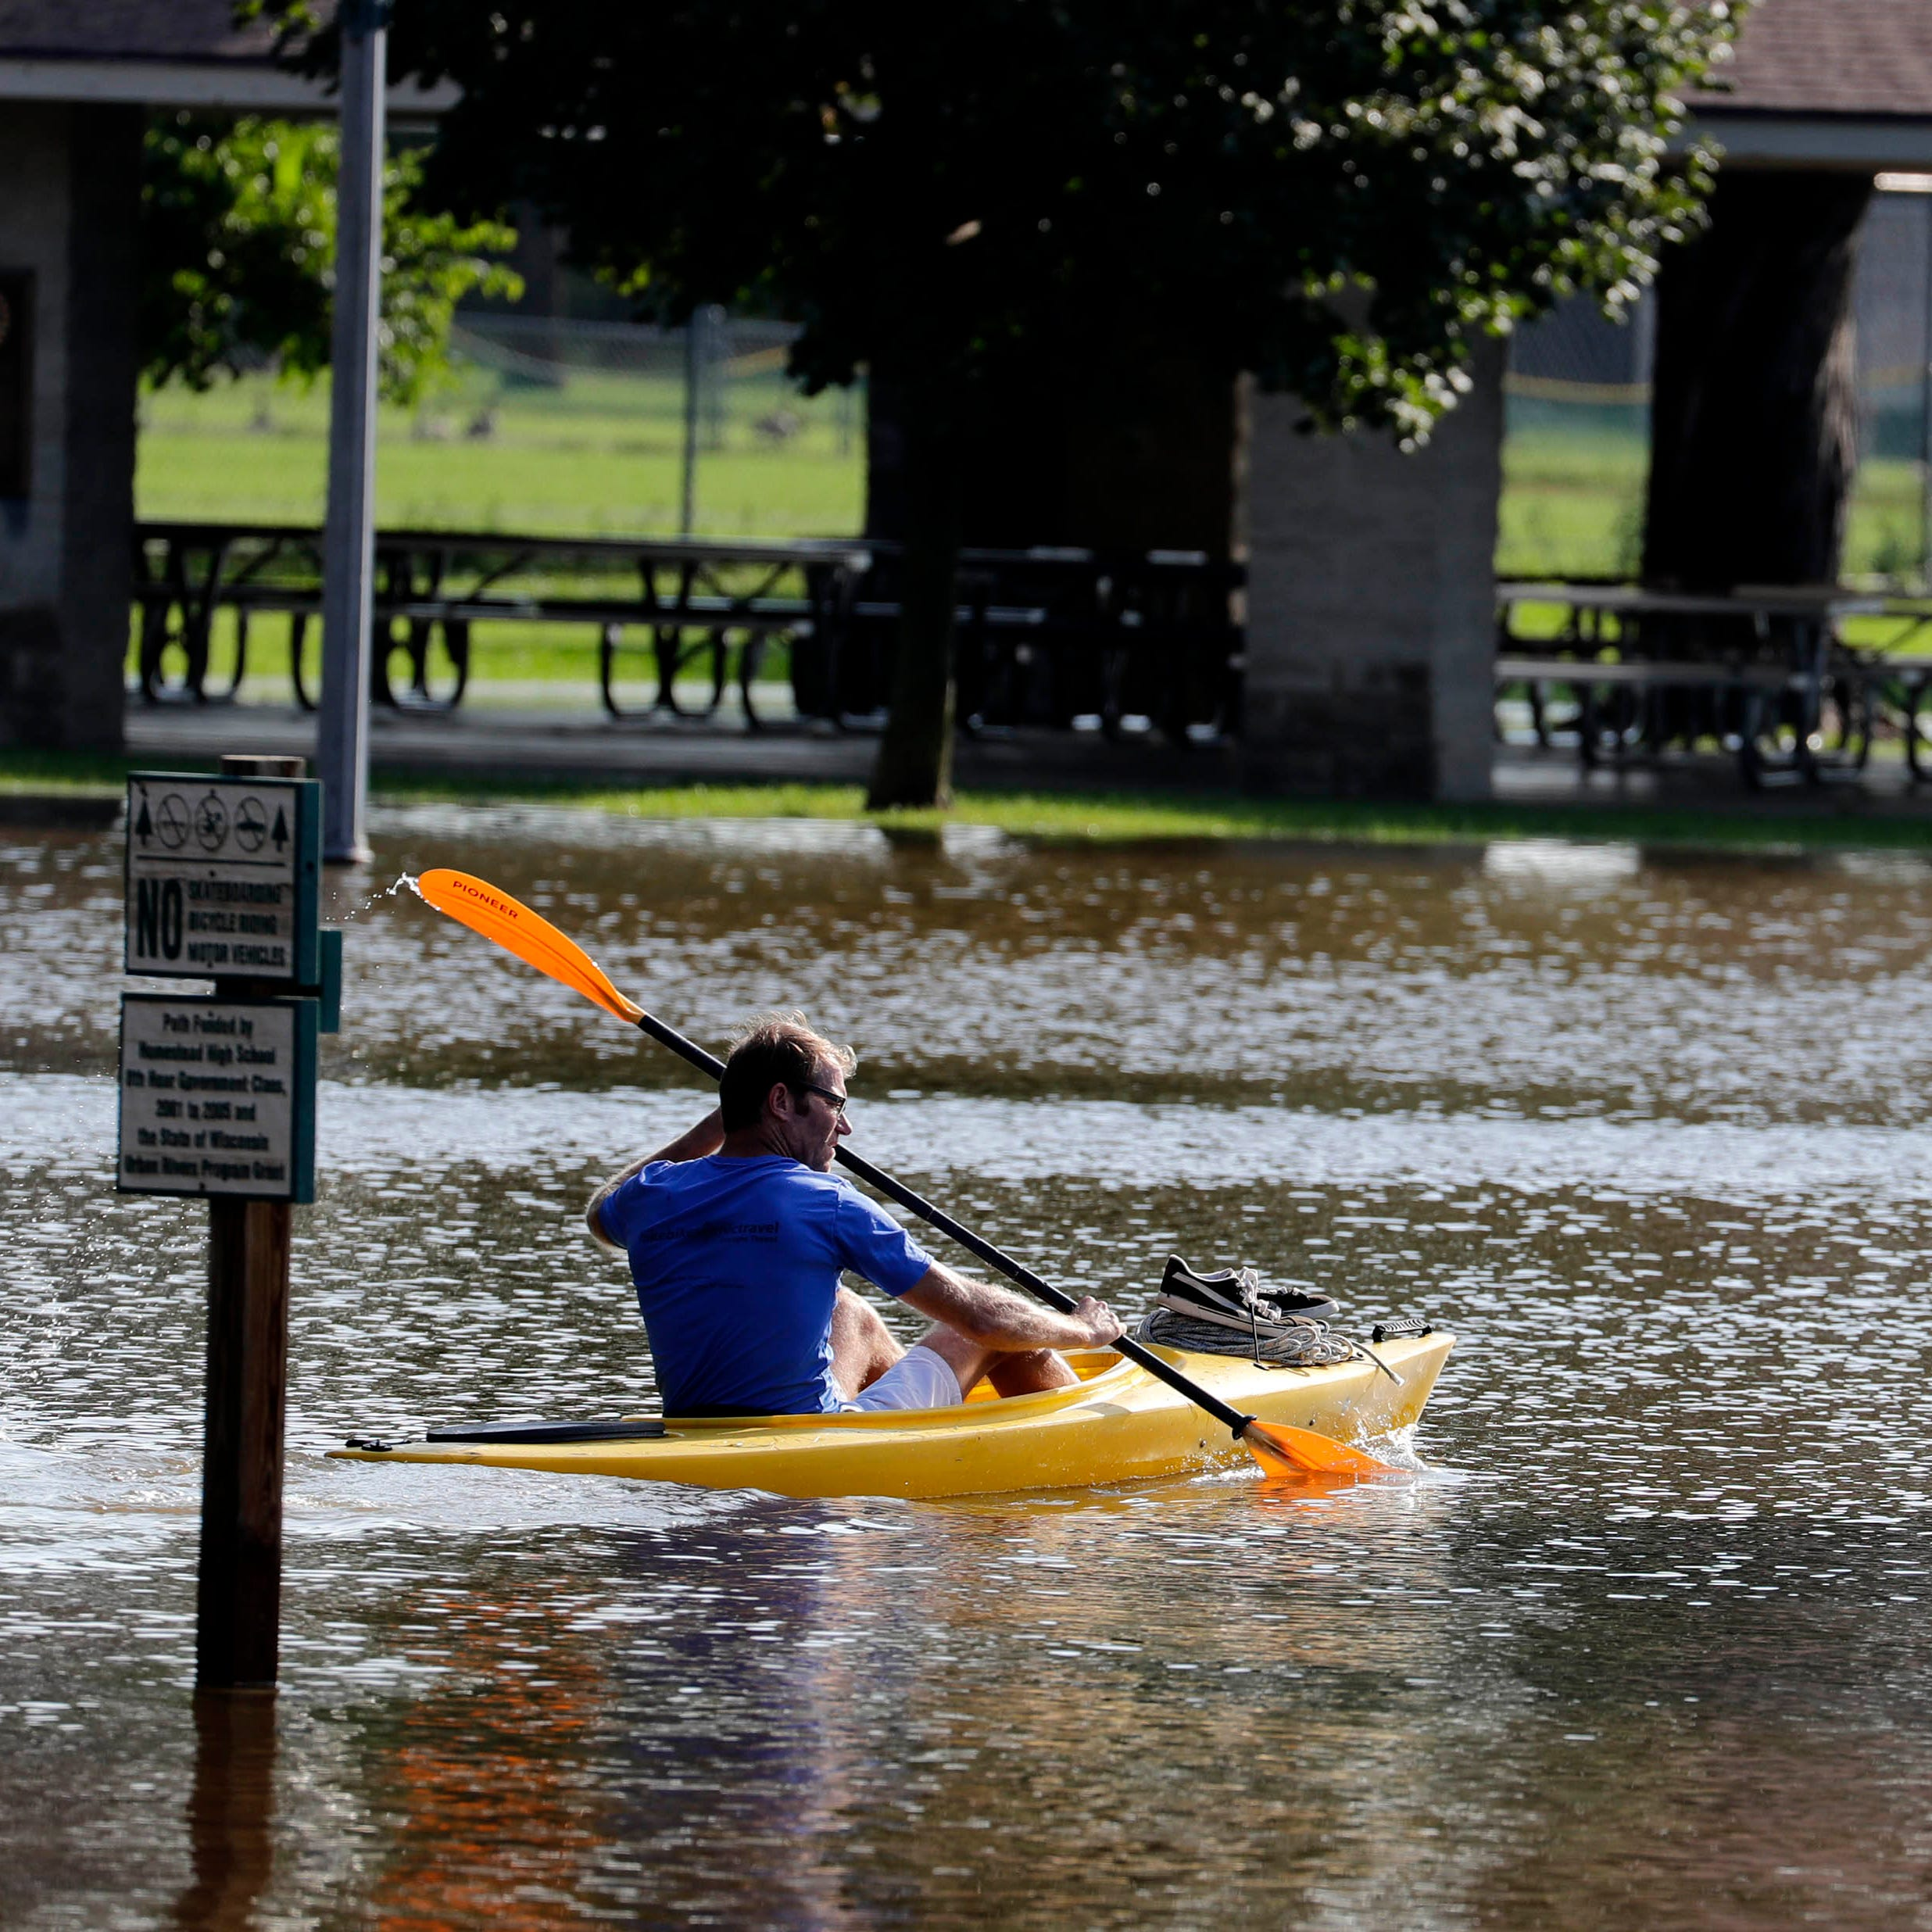 As dry weather finally nears, waterlogged Wisconsin reports staggering 3-week rain totals